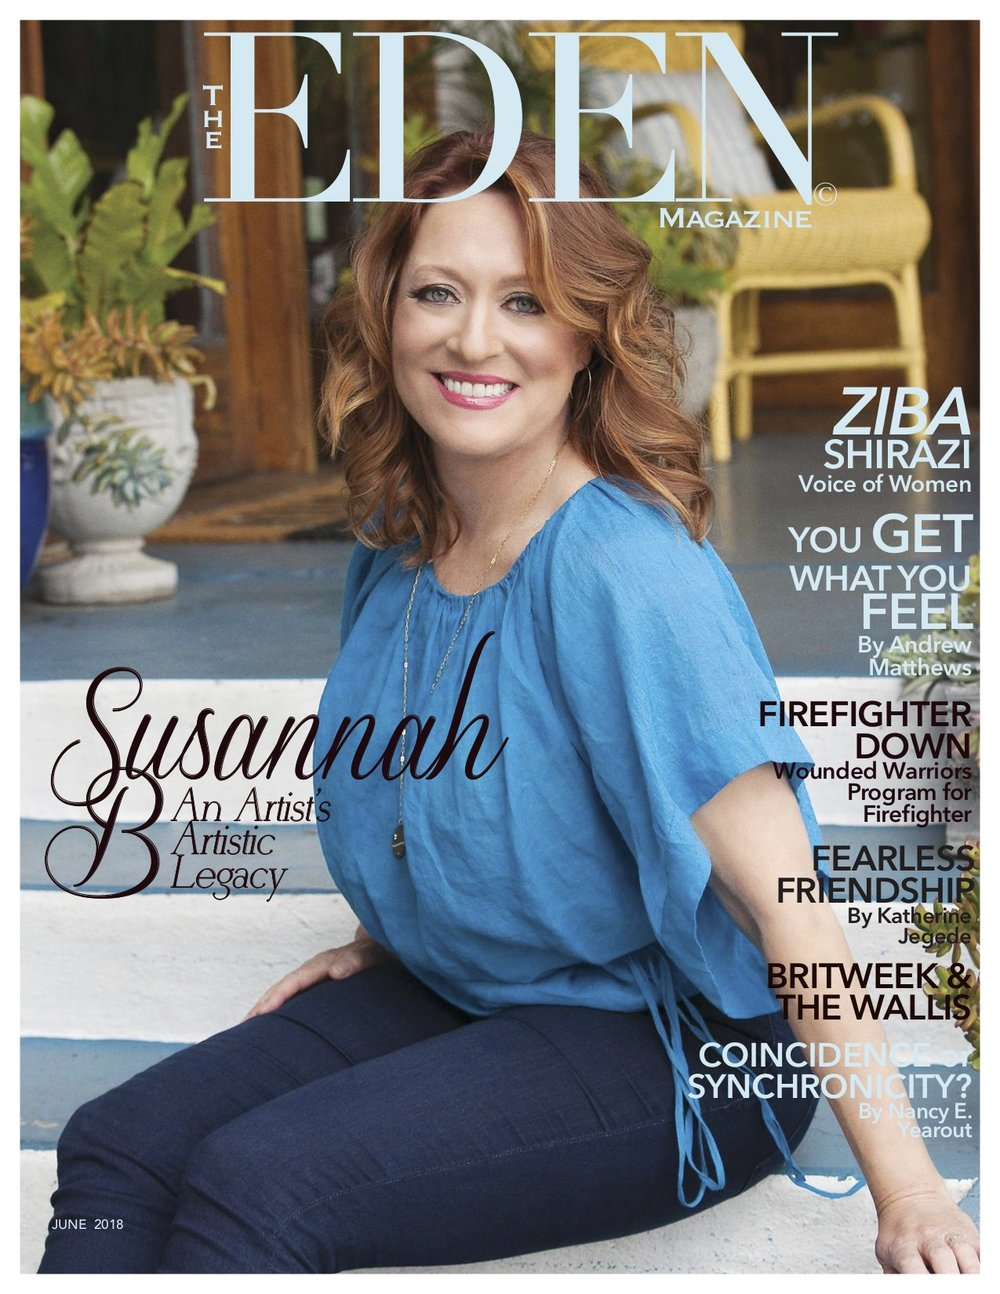 Susannah B on the cover of the June 2018 edition of The Eden Magazine